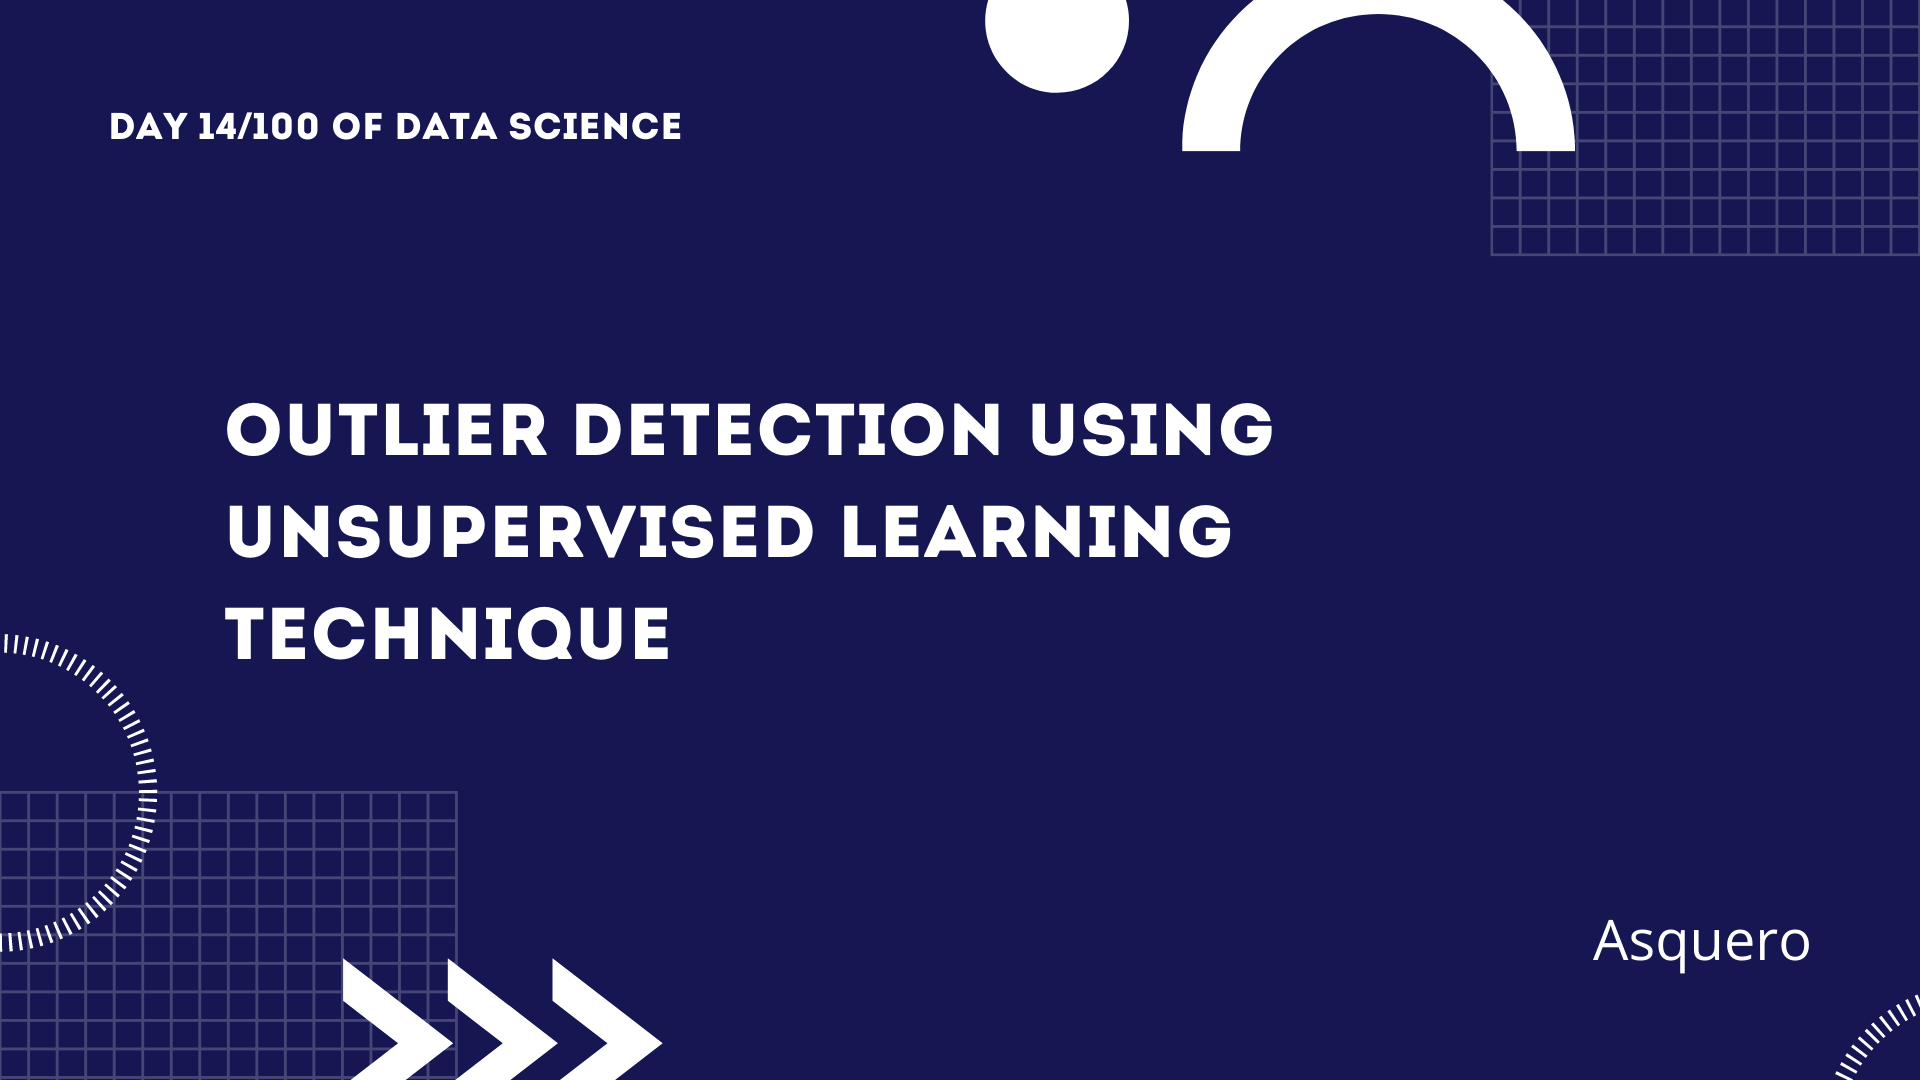 Outlier Detection using Unsupervised Learning Technique